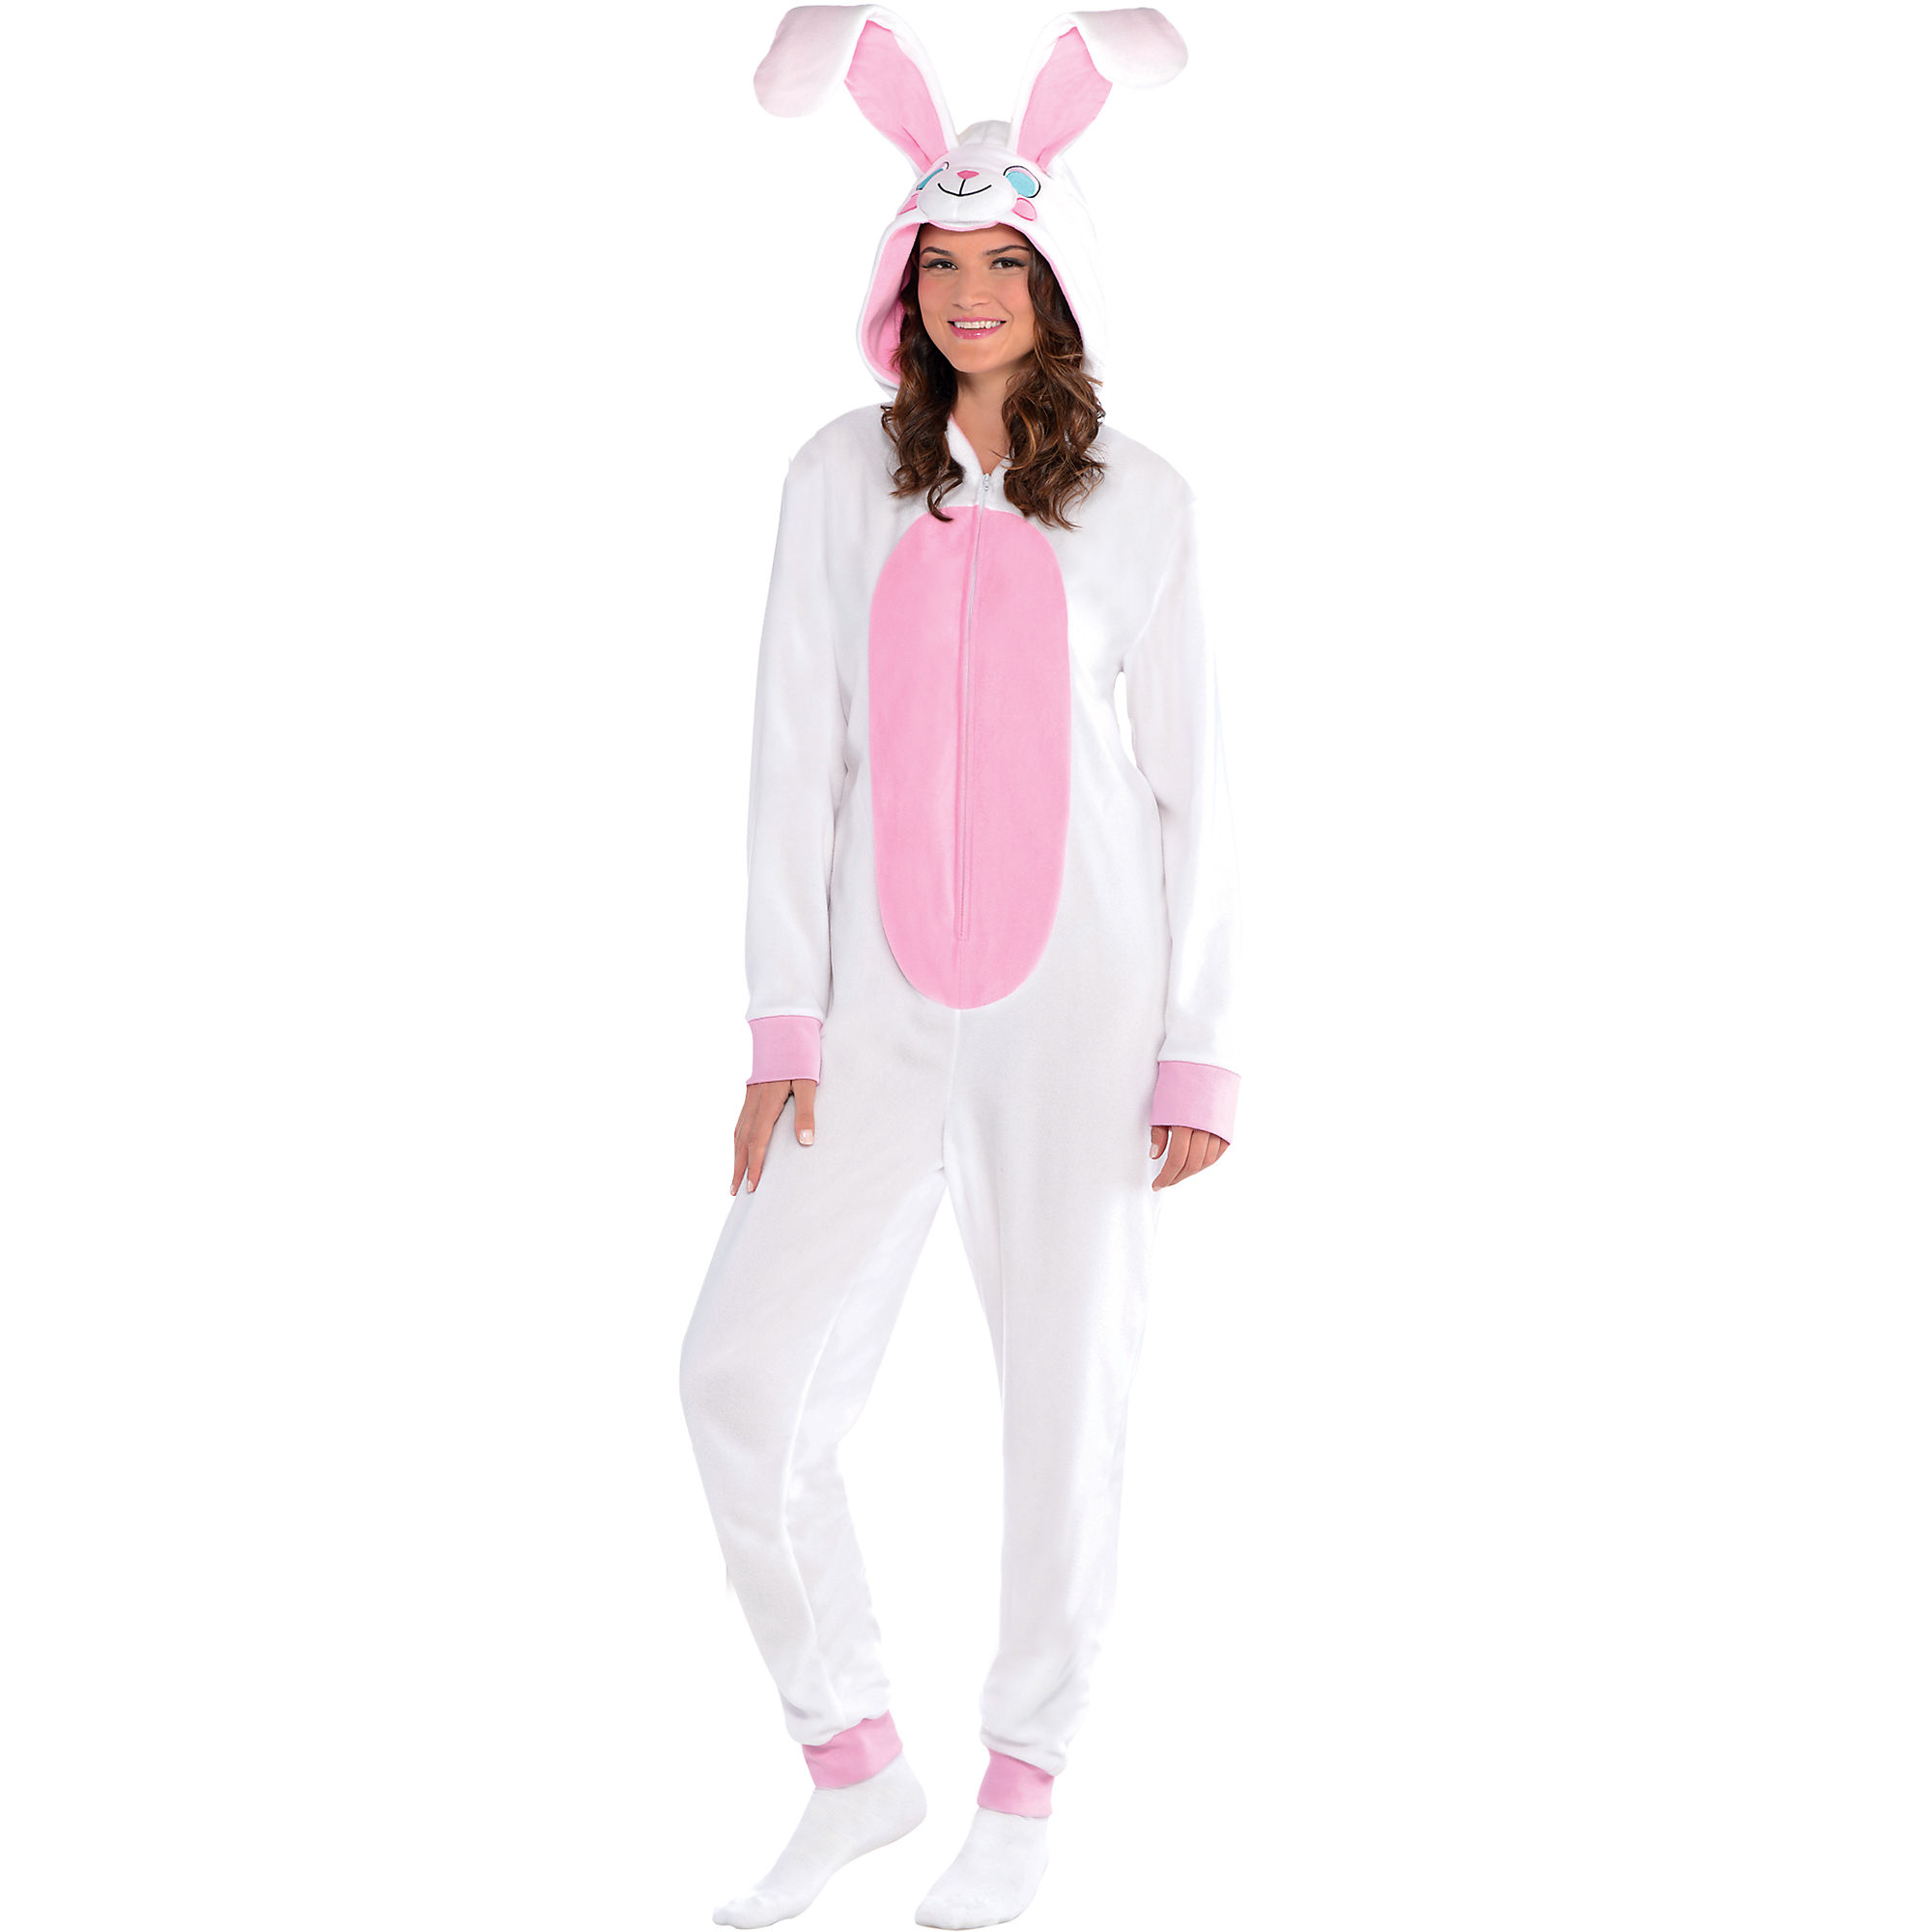 one-piece garment Rabbit pajamas white Easter Bunny costume for kids small-1pcs